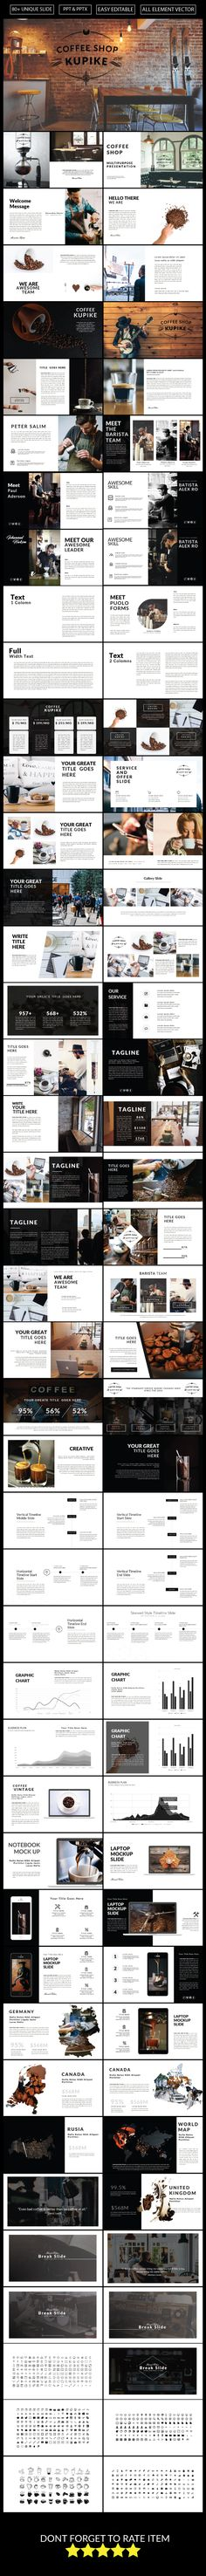 Coffee Kupike Multipurpose Powerpoint Template